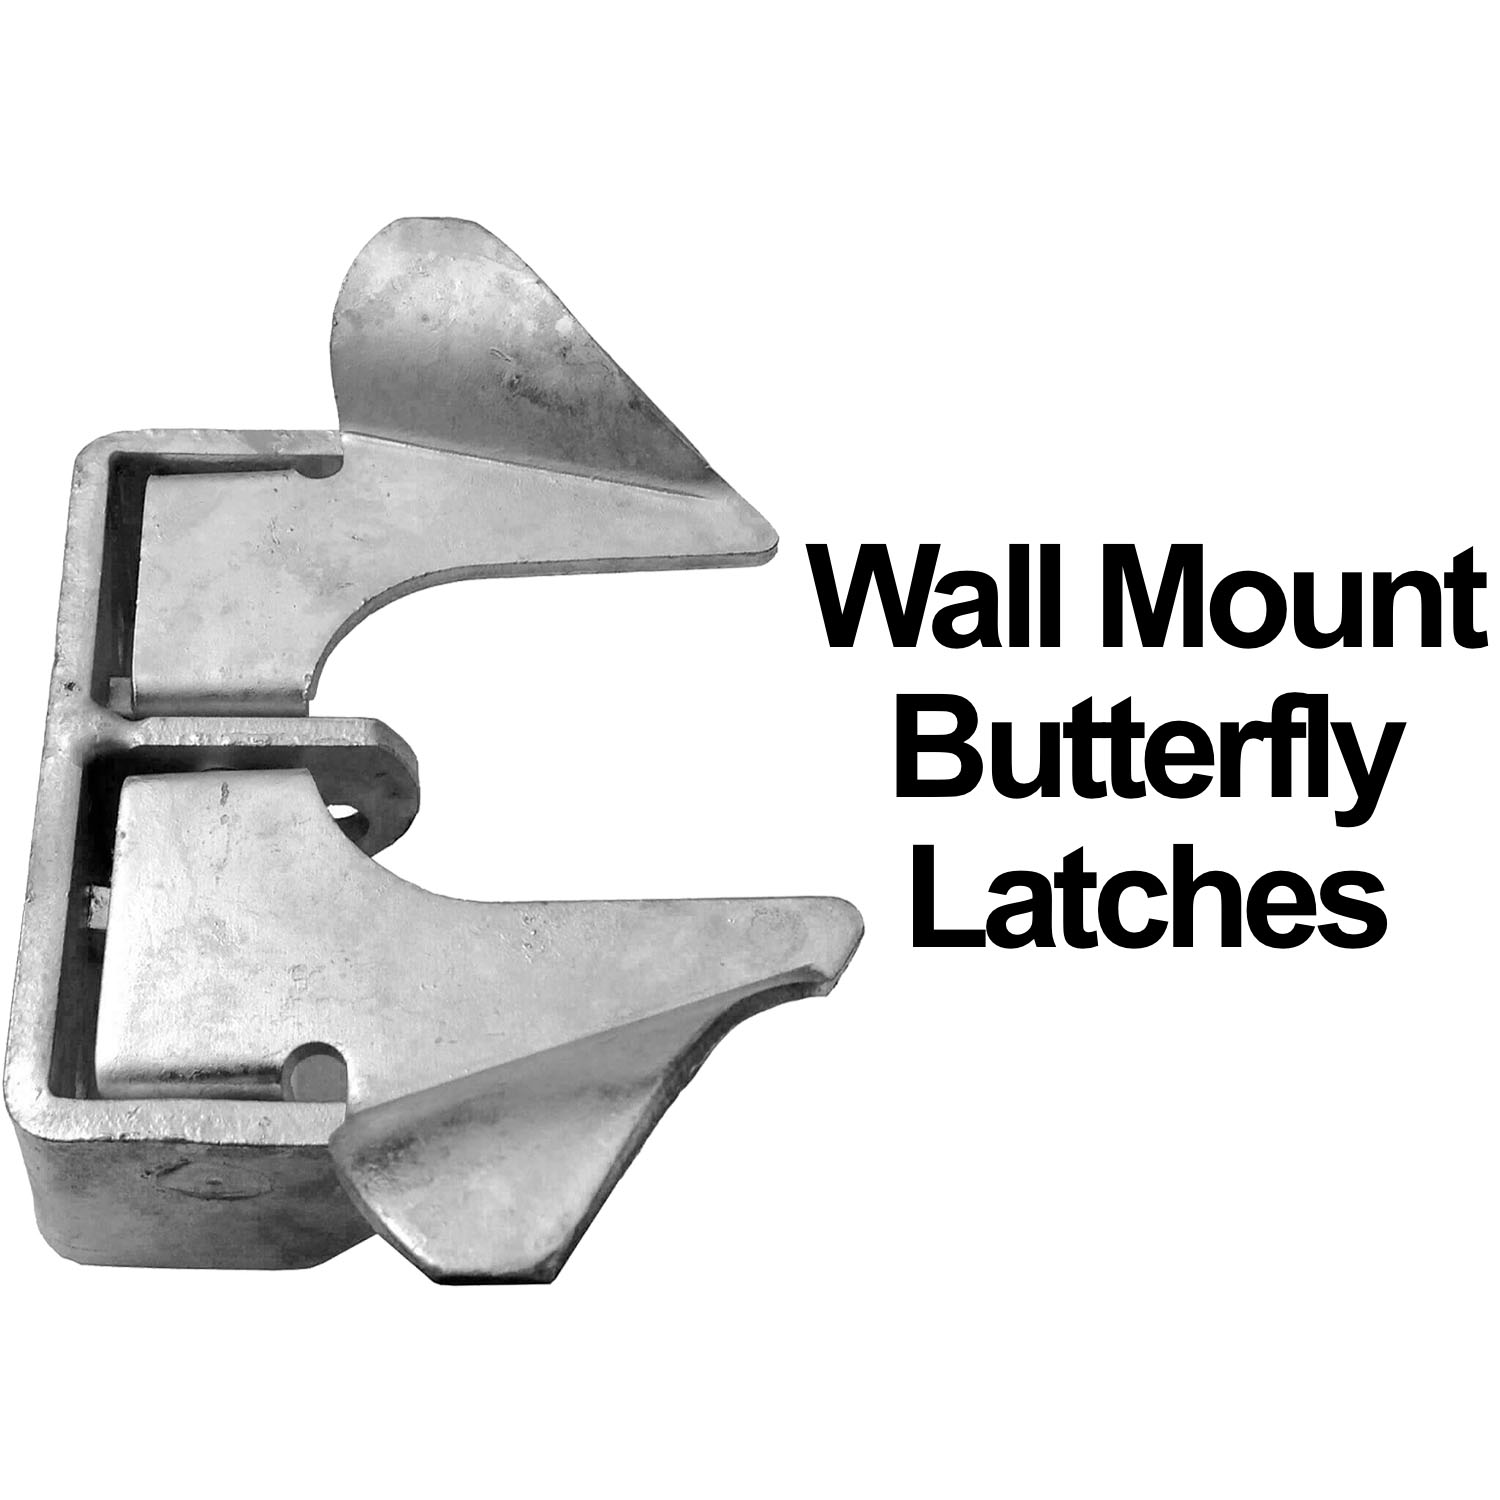 Wall Mount Gate Butterfly Fork Latch